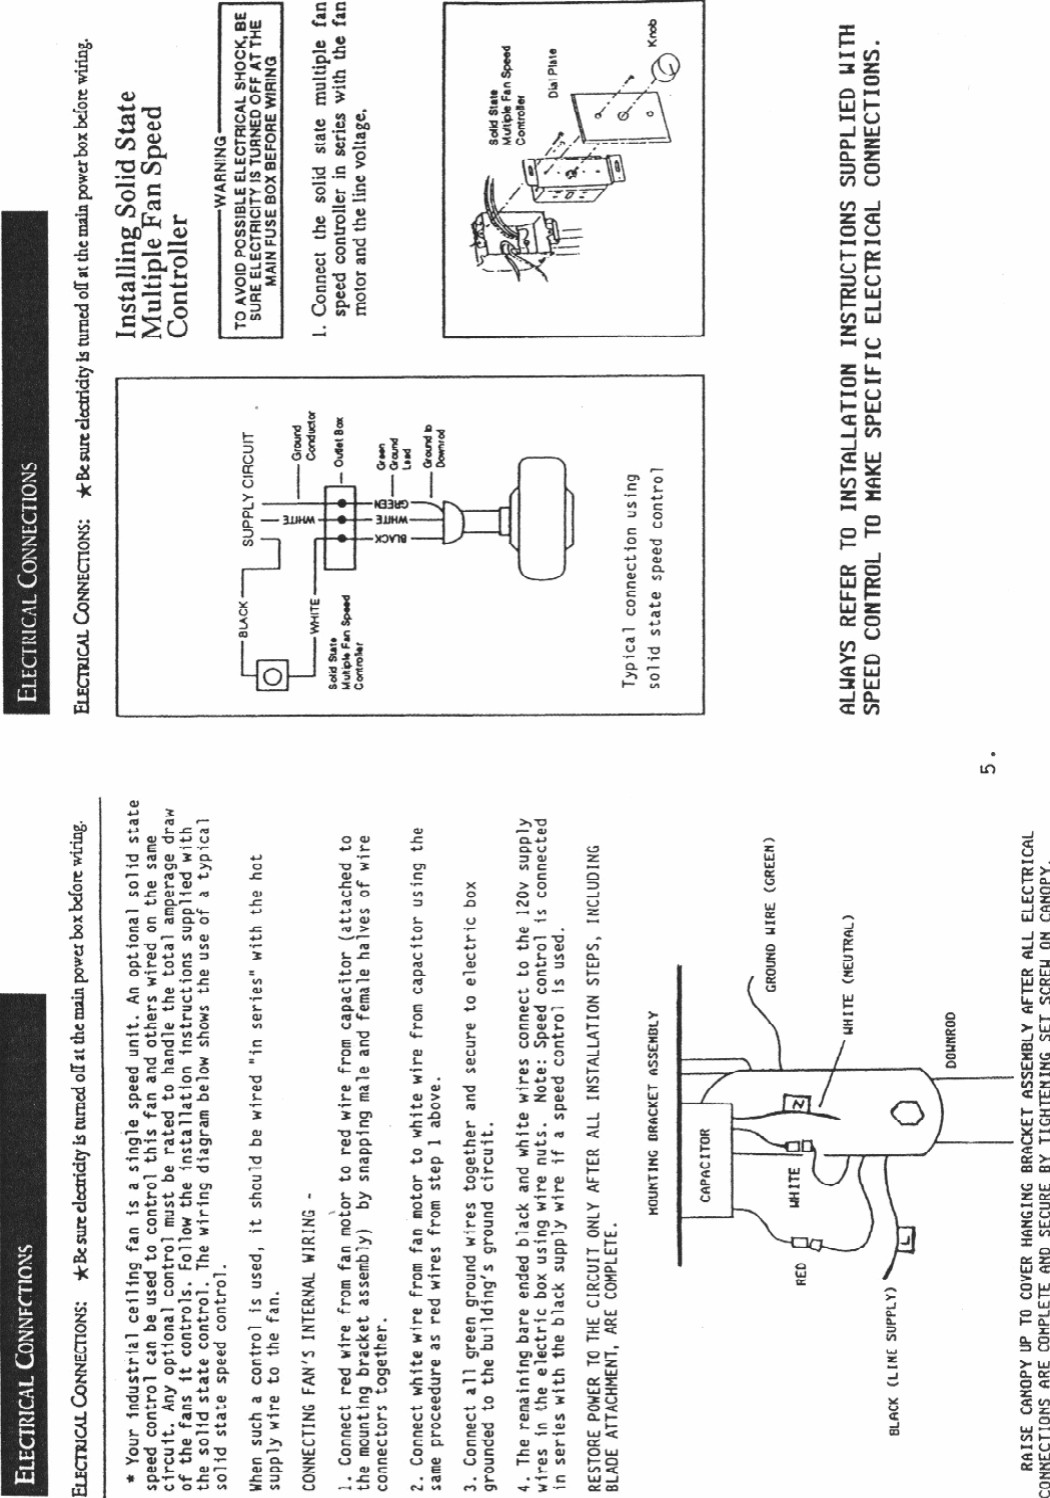 Vista Ind56 Industrial User Manual To The C823e21d 6325 4d55 8736 Fuse Box Page 5 Of 7